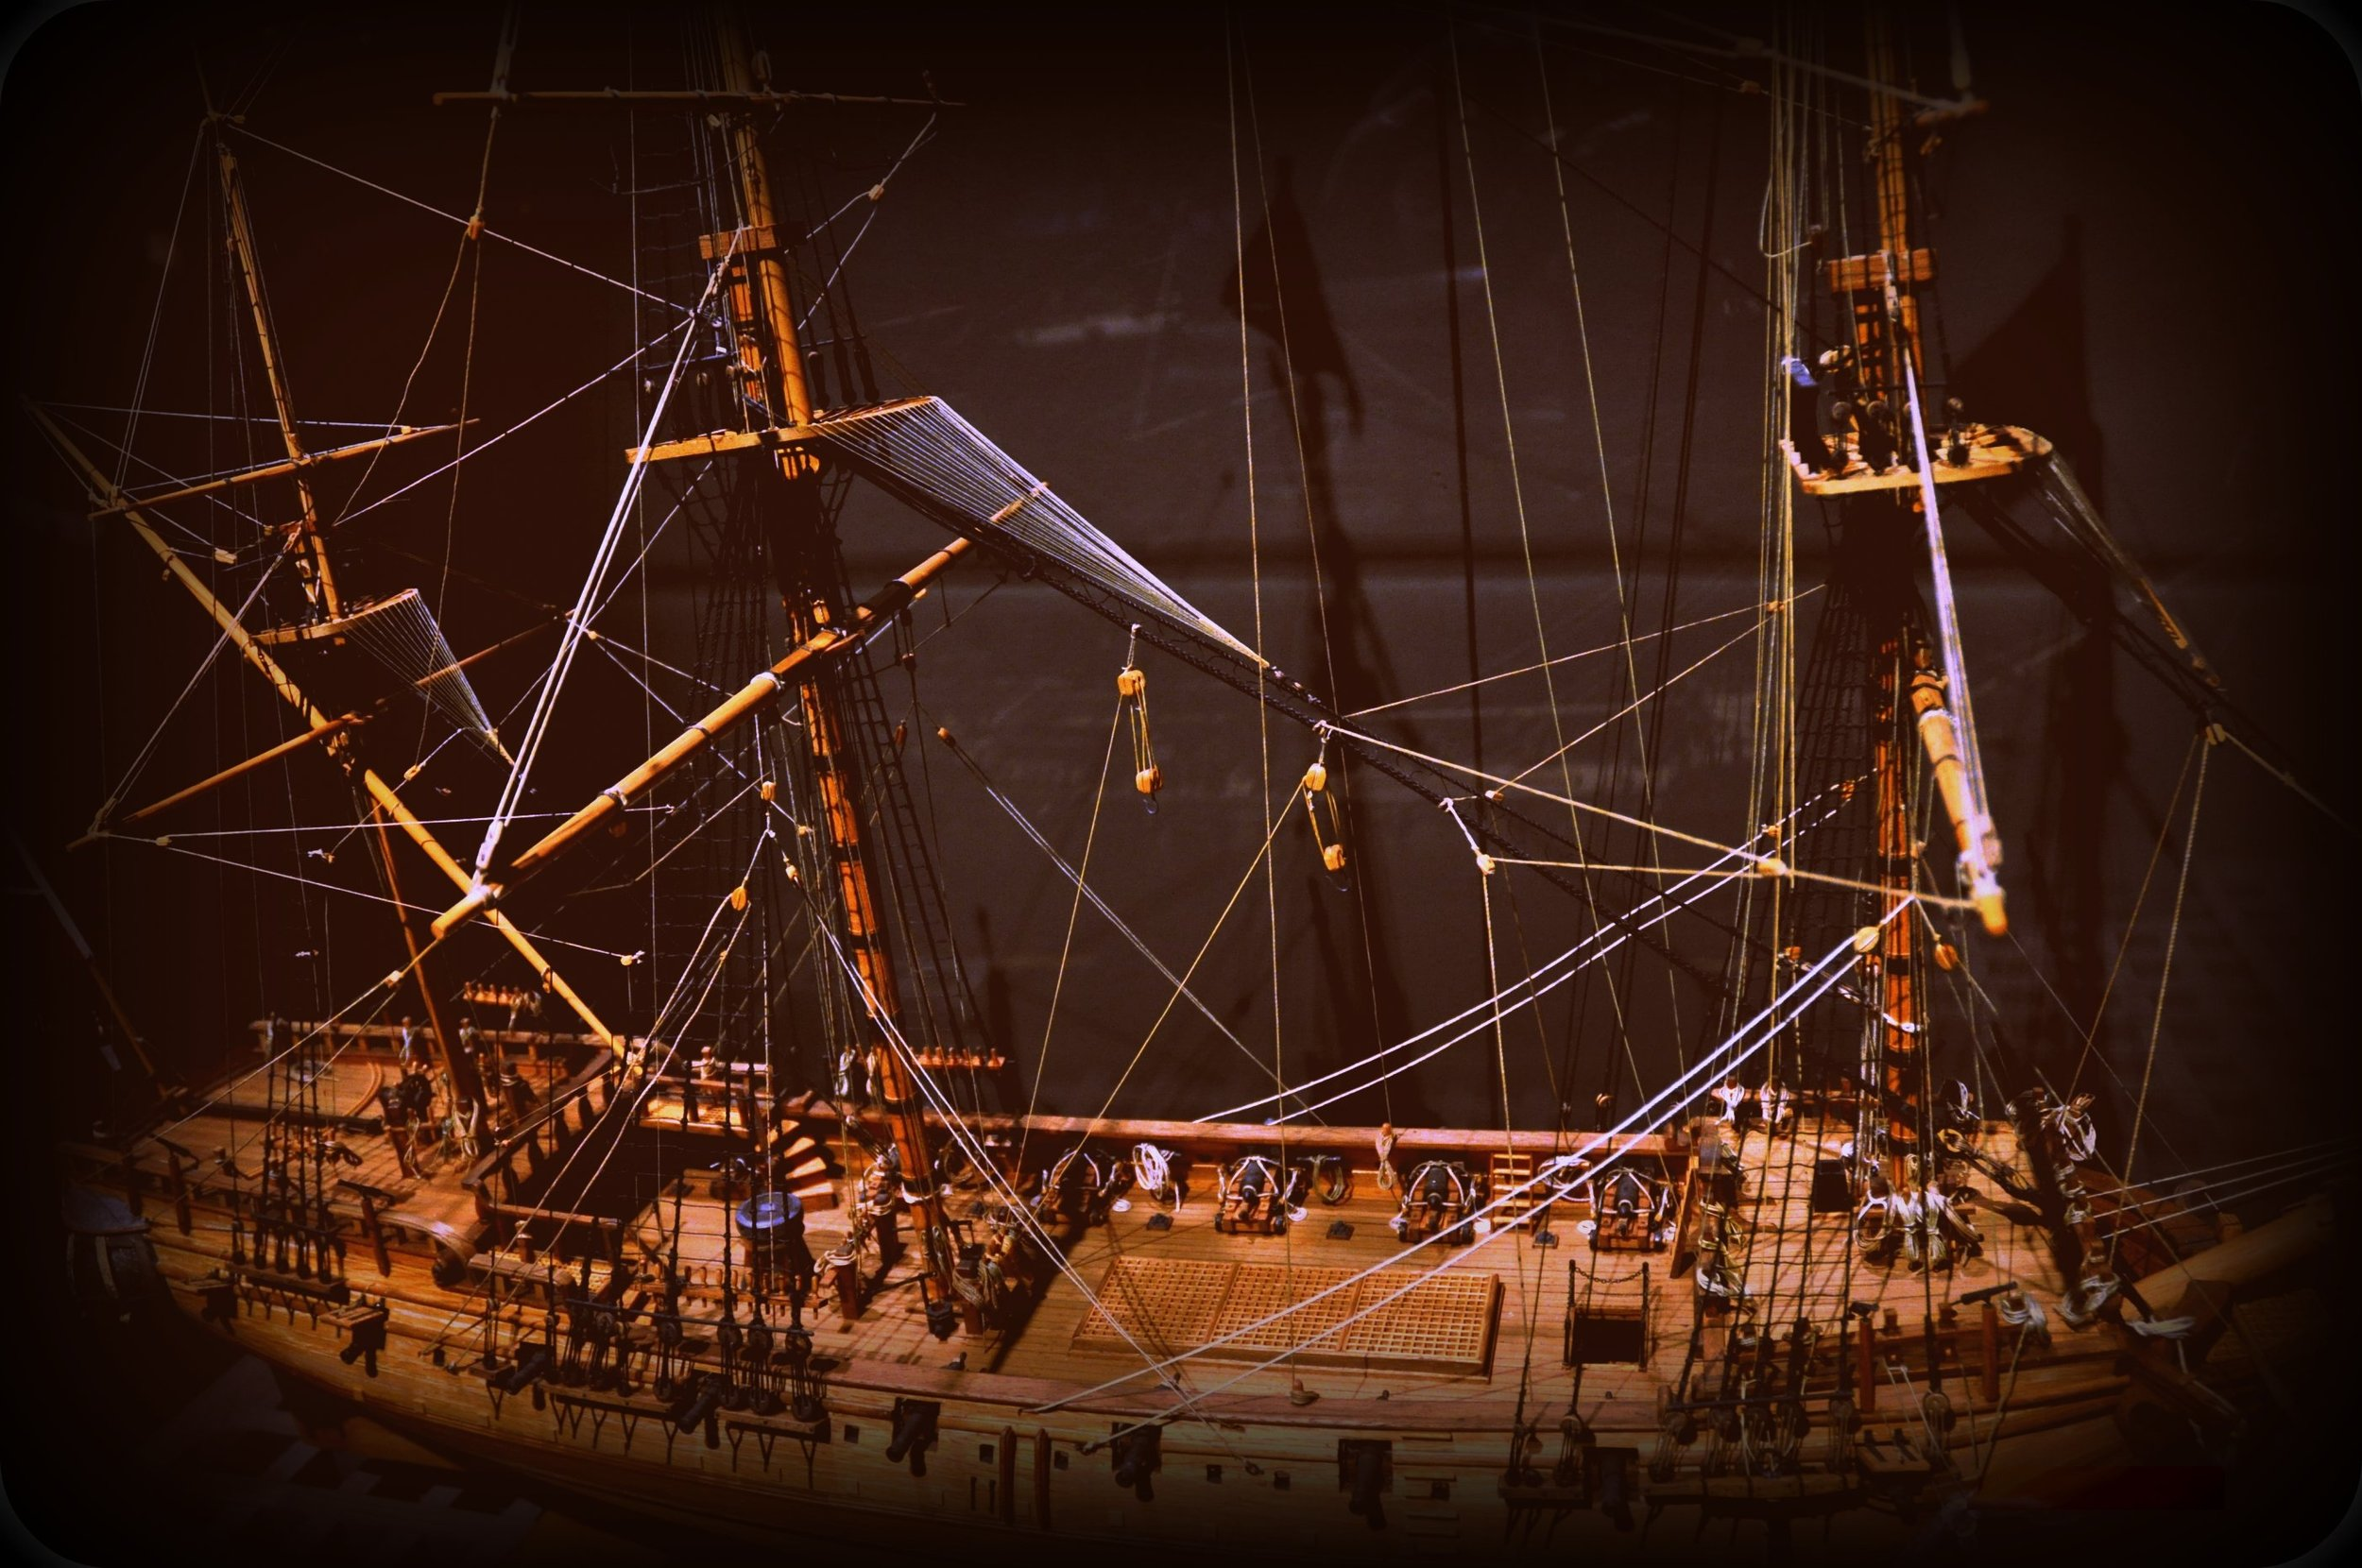 A model of the ship the  Whydah Galley . Source: jjsala, available  here .